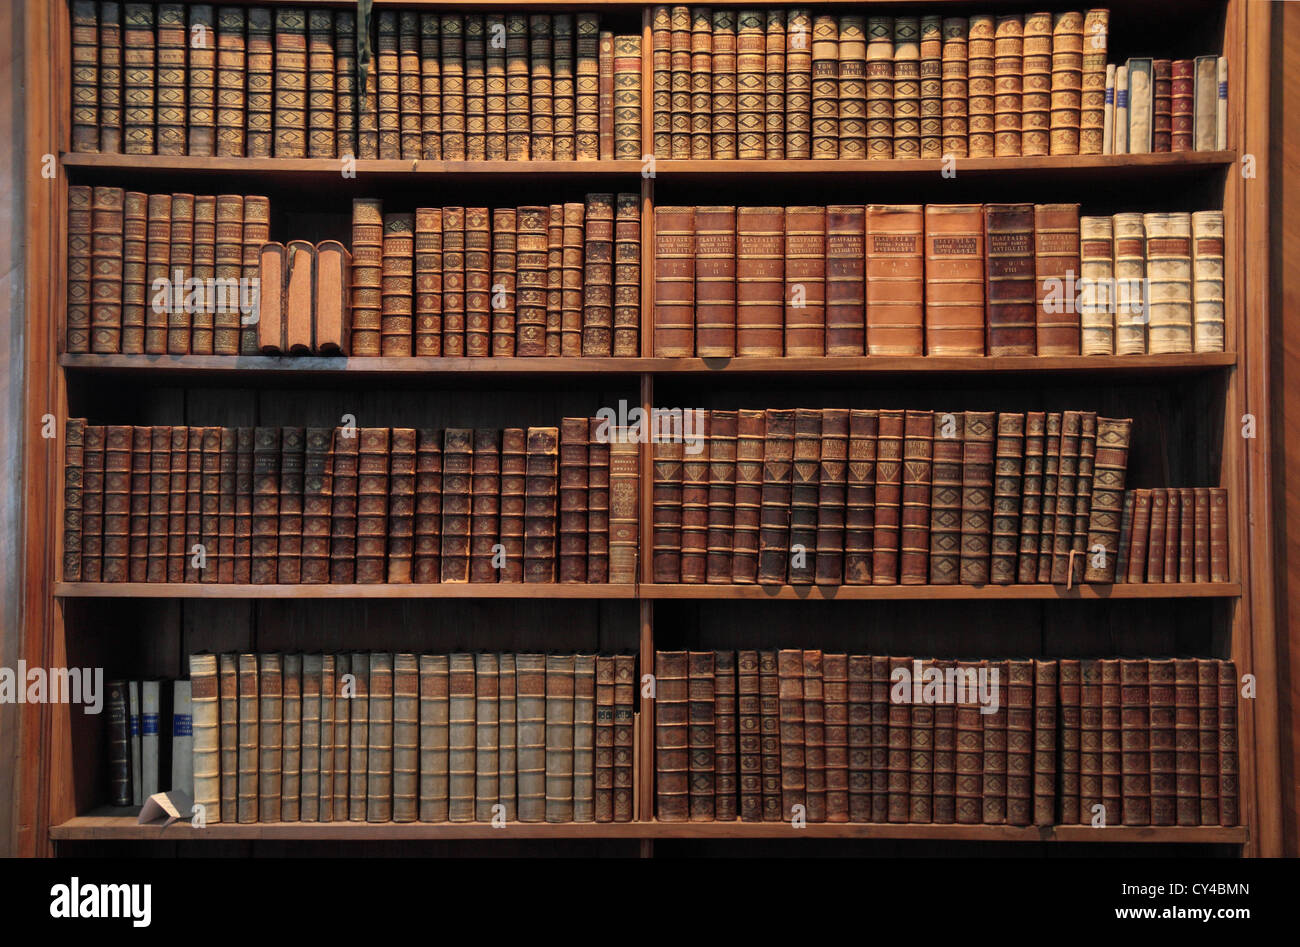 Book case in the Prunksaal Nationalbibliothek (Austrian National Library), Hofburg Palace, Vienna, Austria. - Stock Image